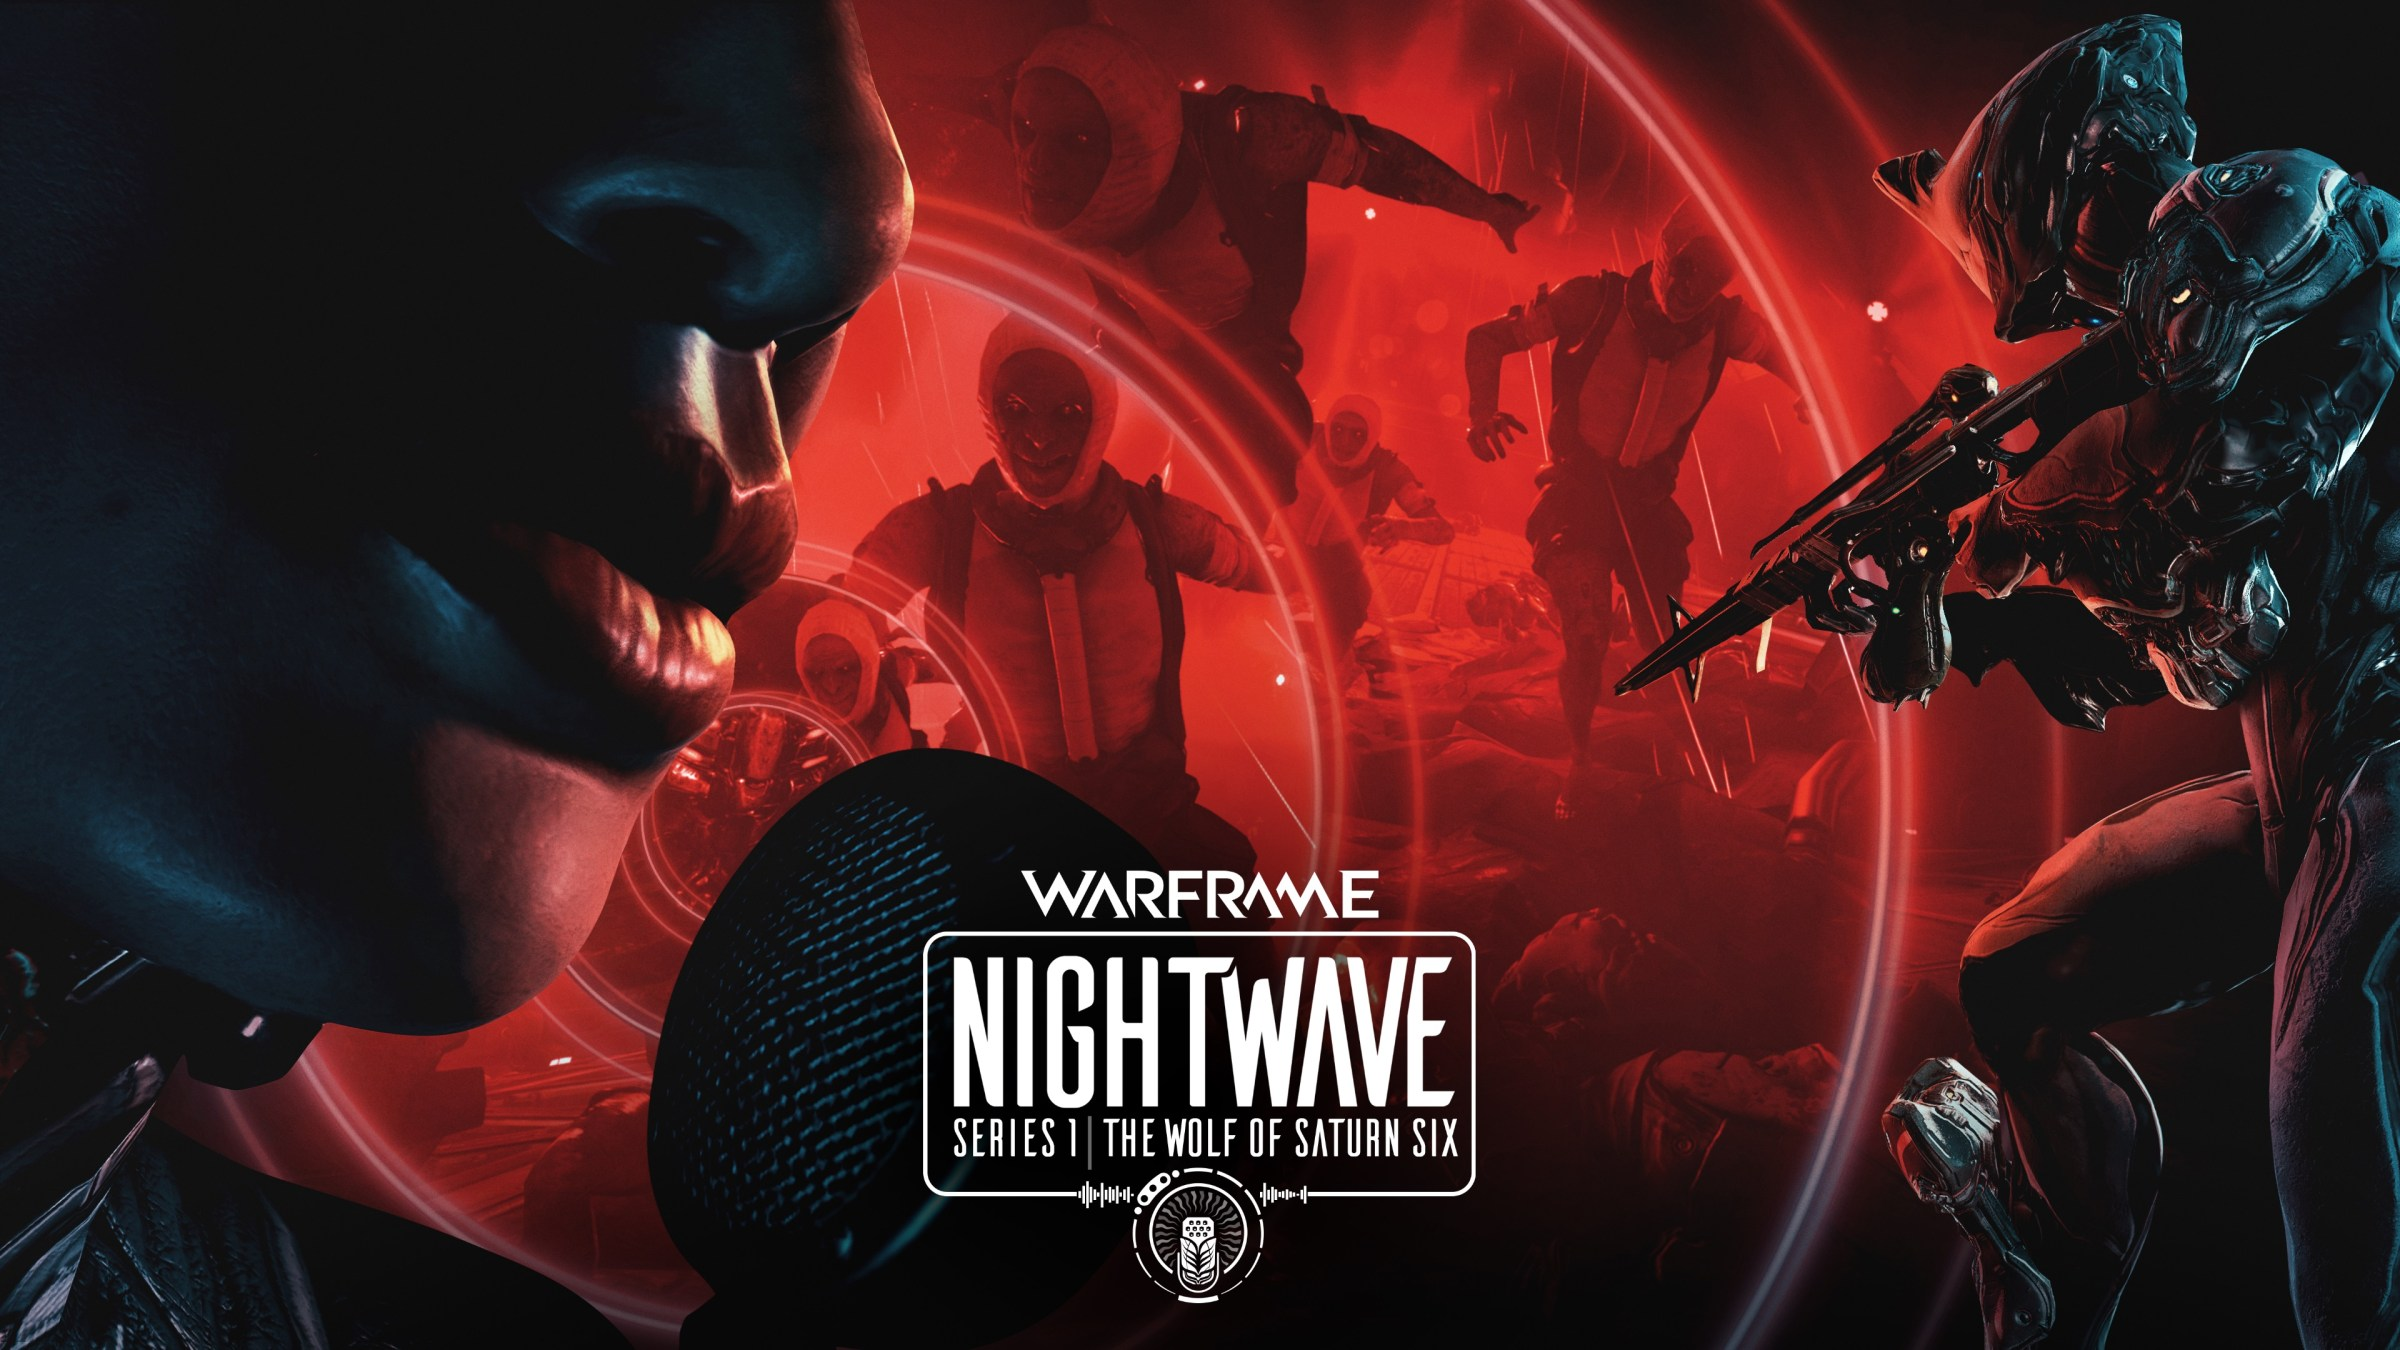 Digital Extremes updates Warframe with a new game mode, Nightwave